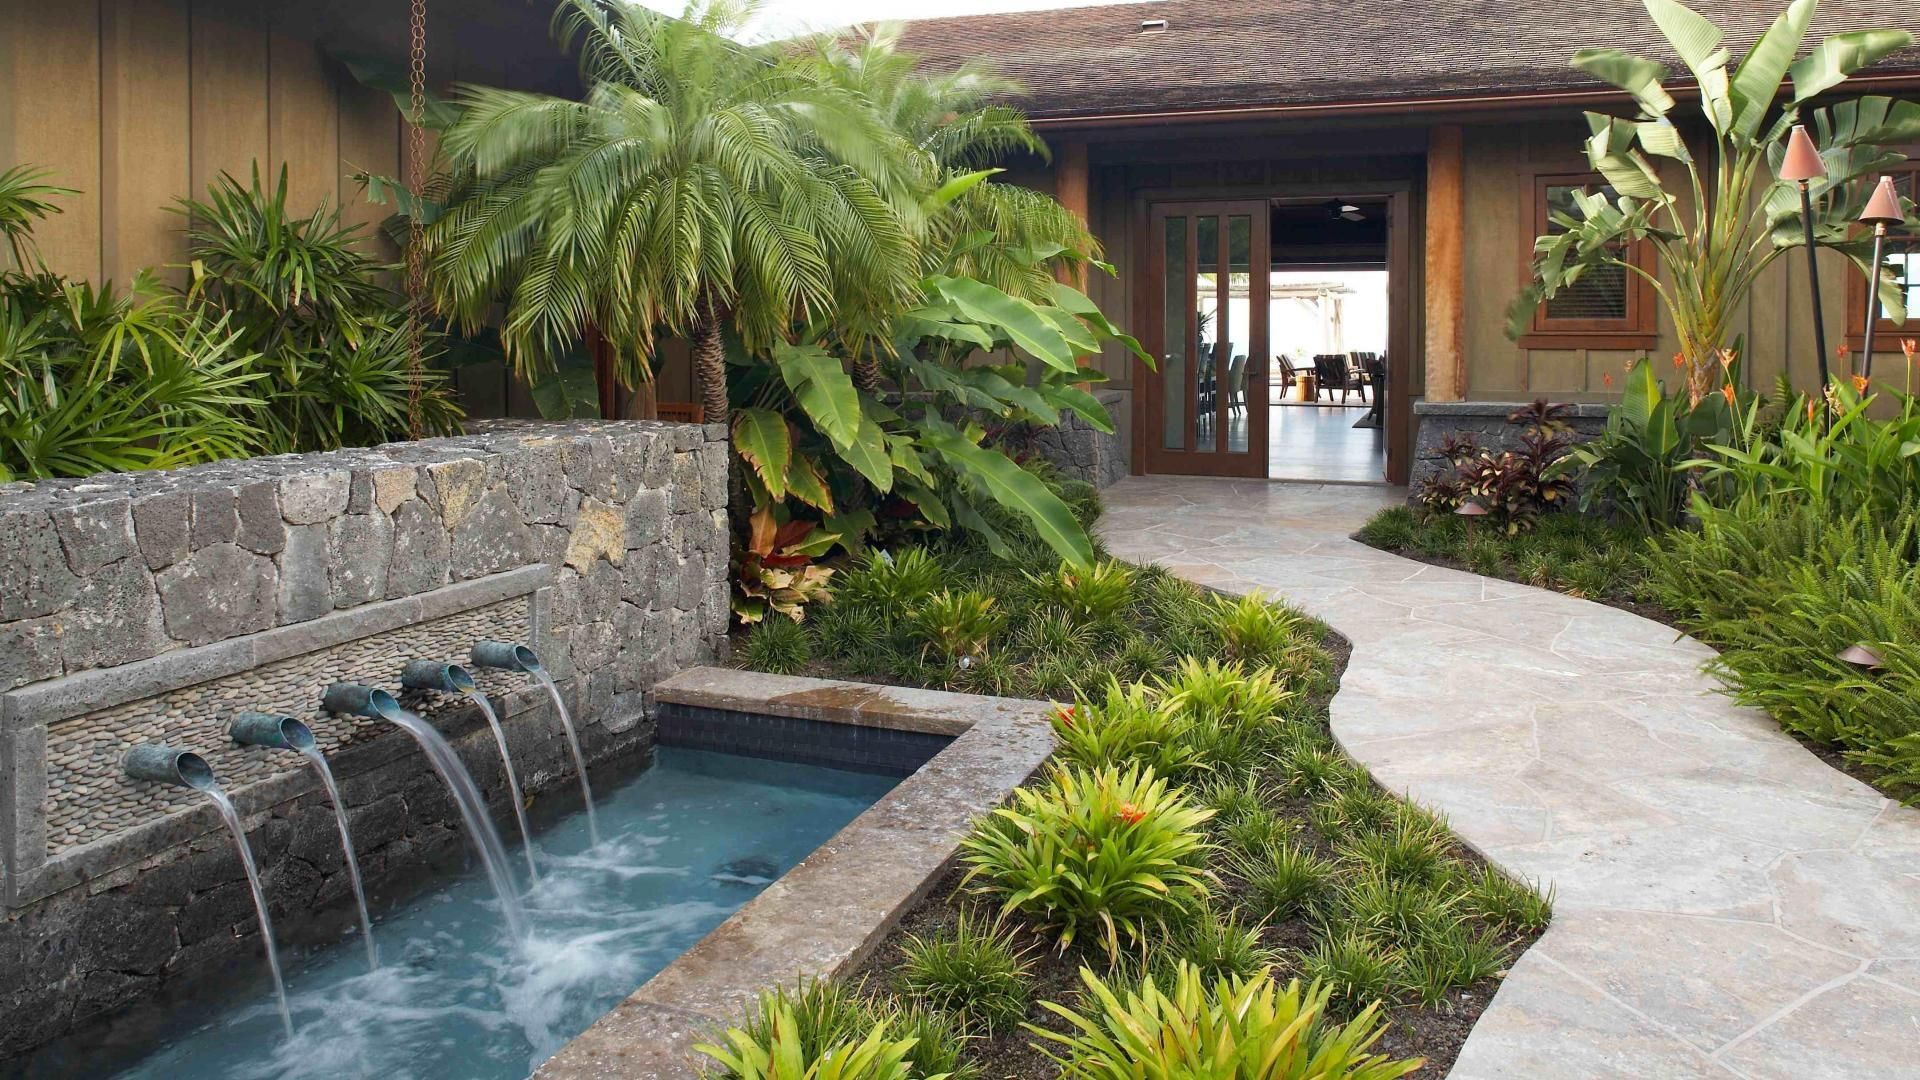 1920x1080 beautiful hawaiian zen garden with waterfall and for Garden pool zen area